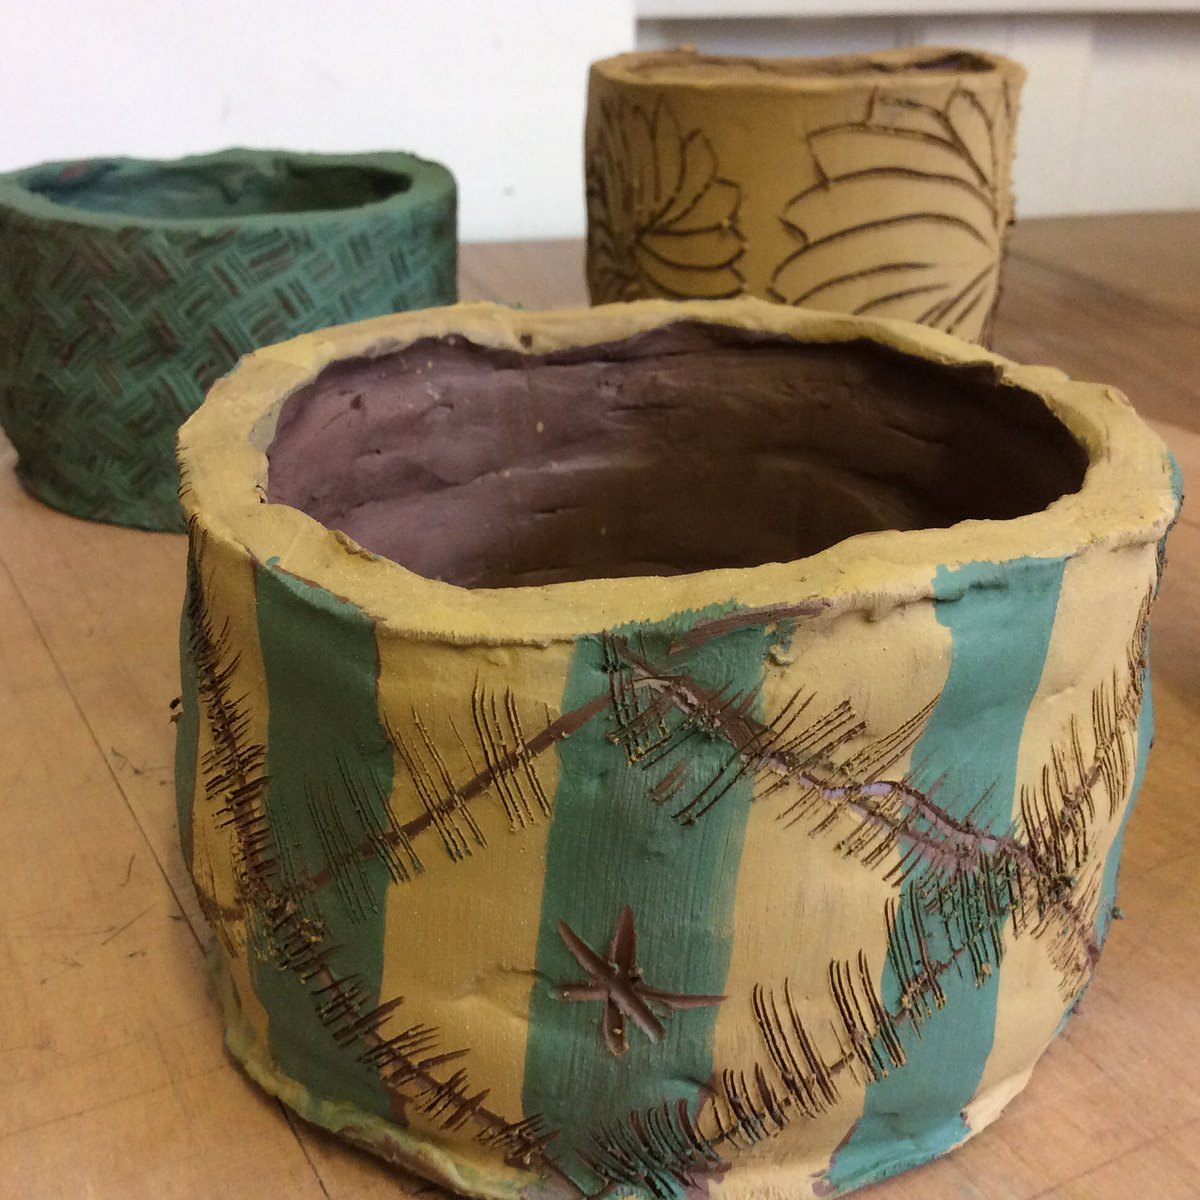 Some of the lovely work made in the Pots and Planters workshops I have been running over the past two Sundays. I cant wait to see the results once everything has been fired. #ceramics #hereford #sgraffito #clay #pots #planters <br>http://pic.twitter.com/m8kWR0ZxKC